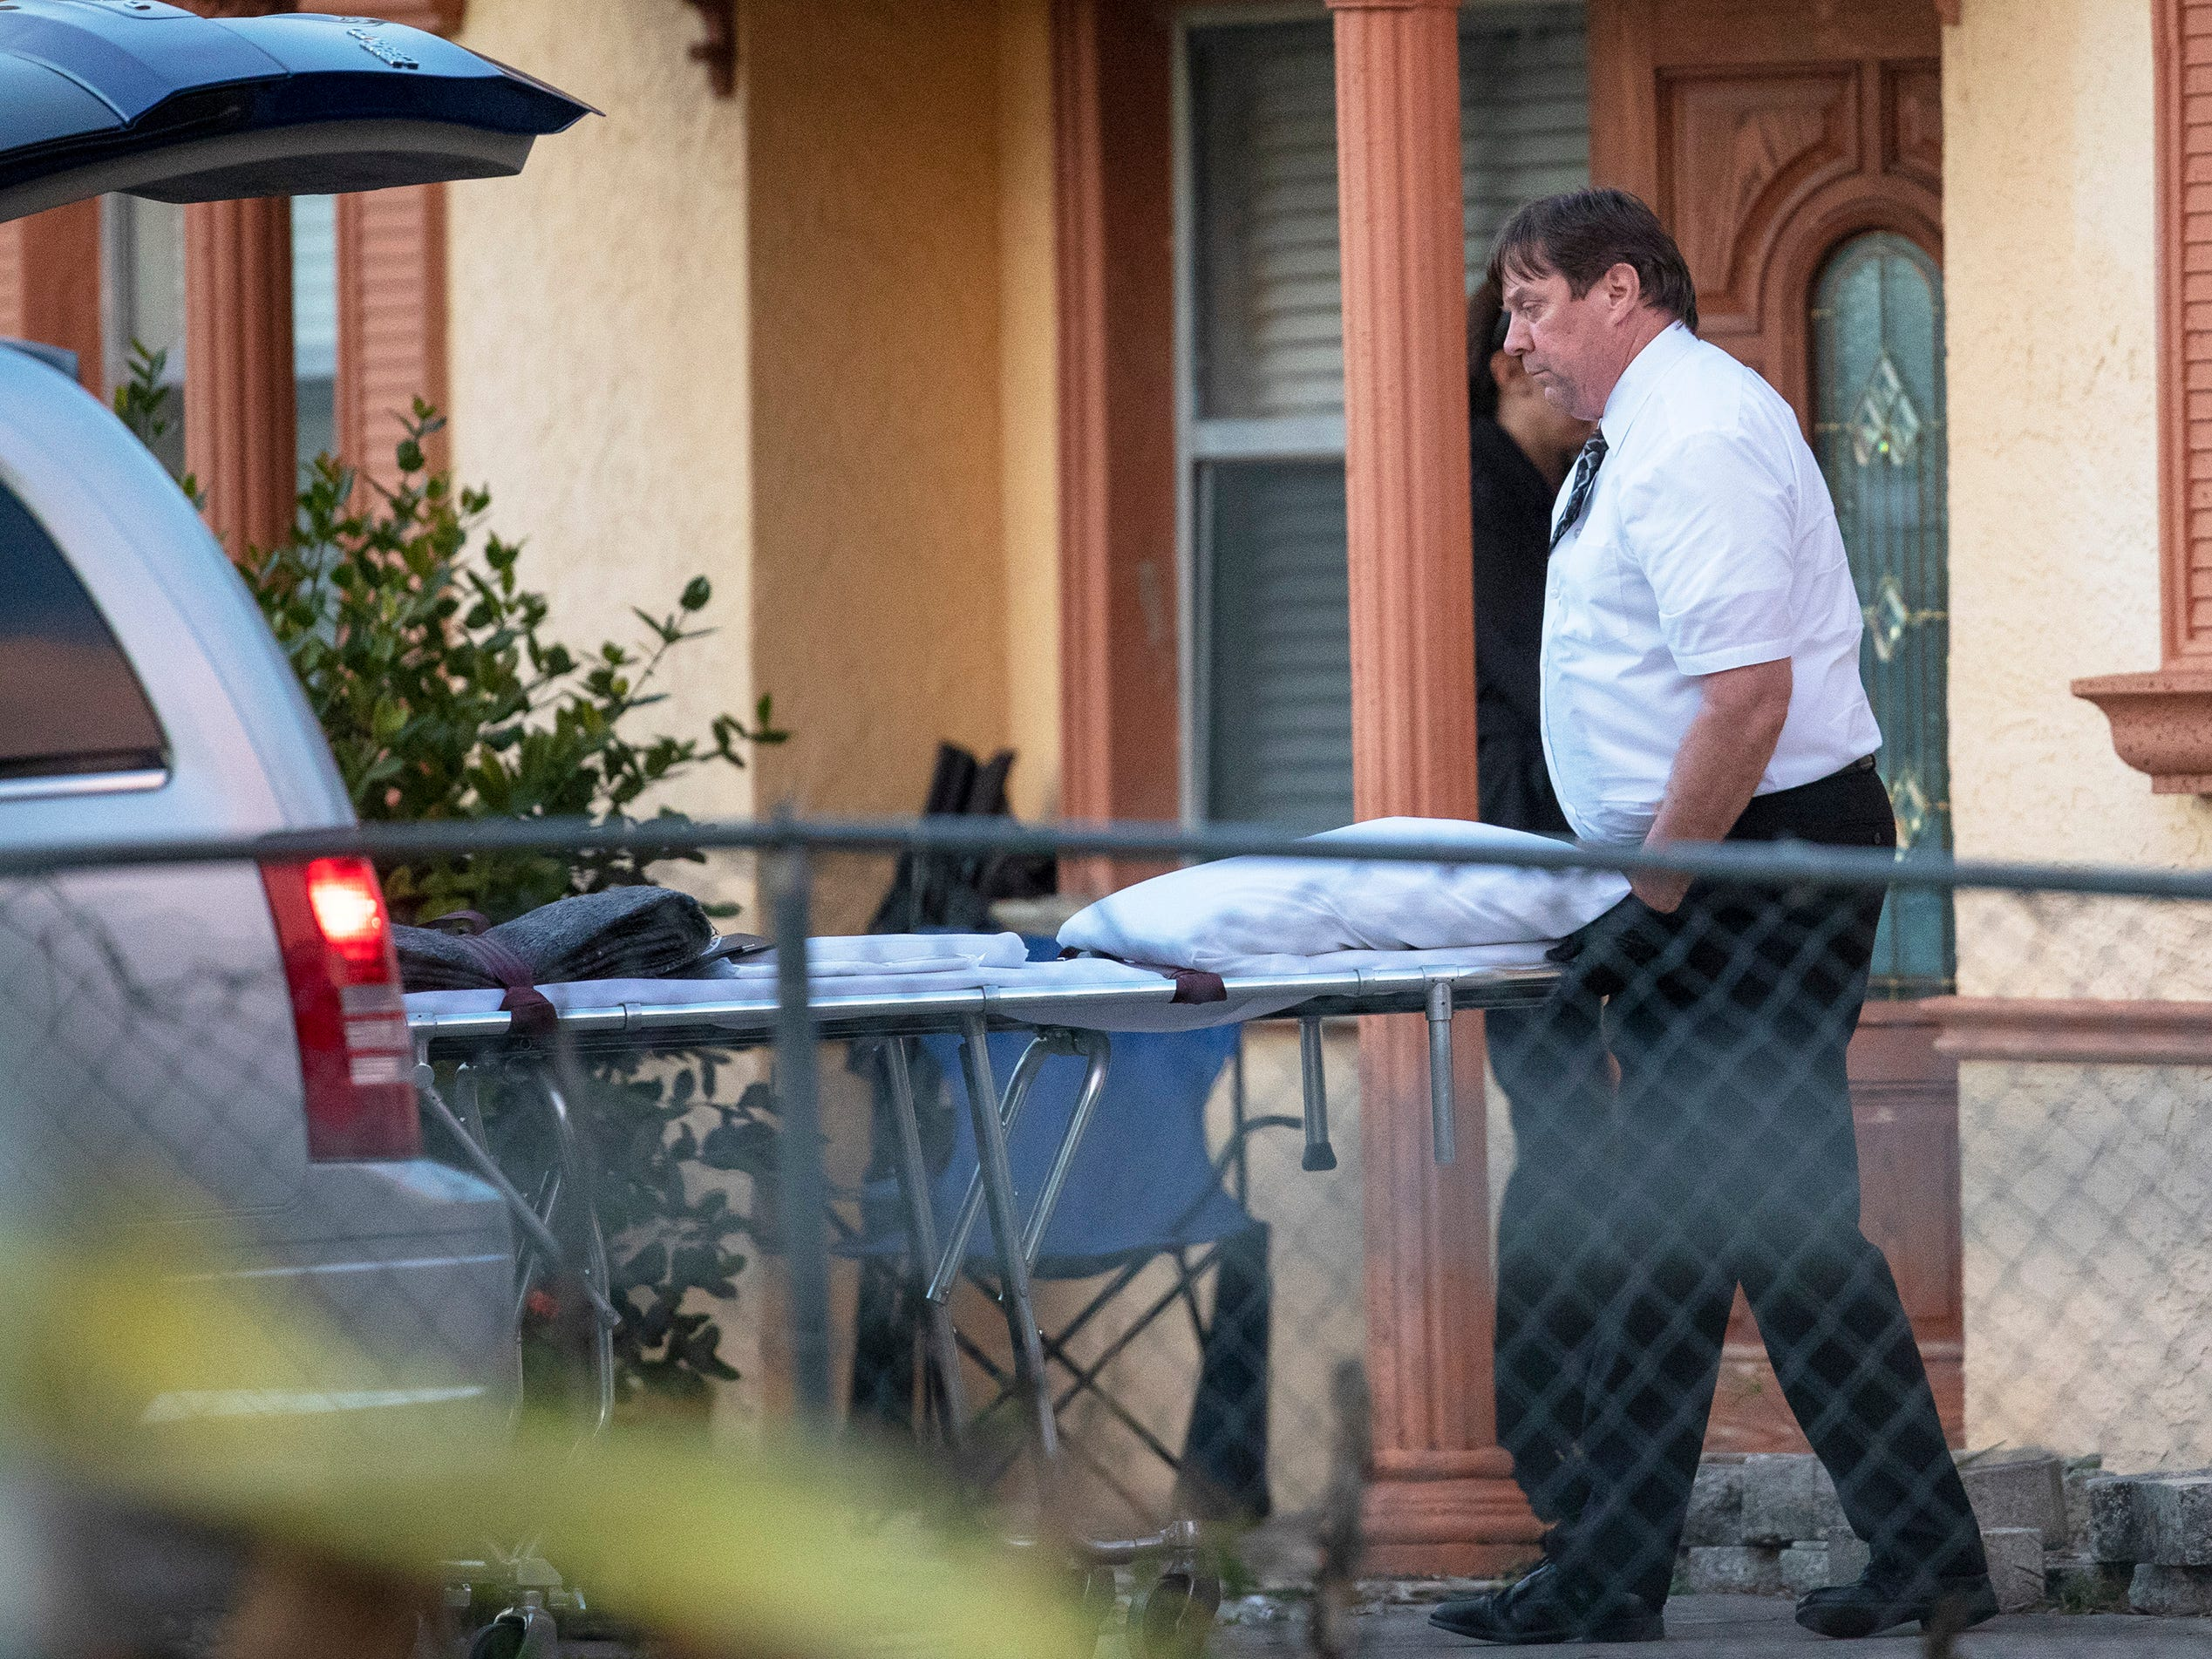 The Lee County medical examiner arrives at a Fort Myers home on Thursday where a mother and her 10-year-old son were found dead. The Fort Myers Police Department has not provided the cause of death and are still investigating.